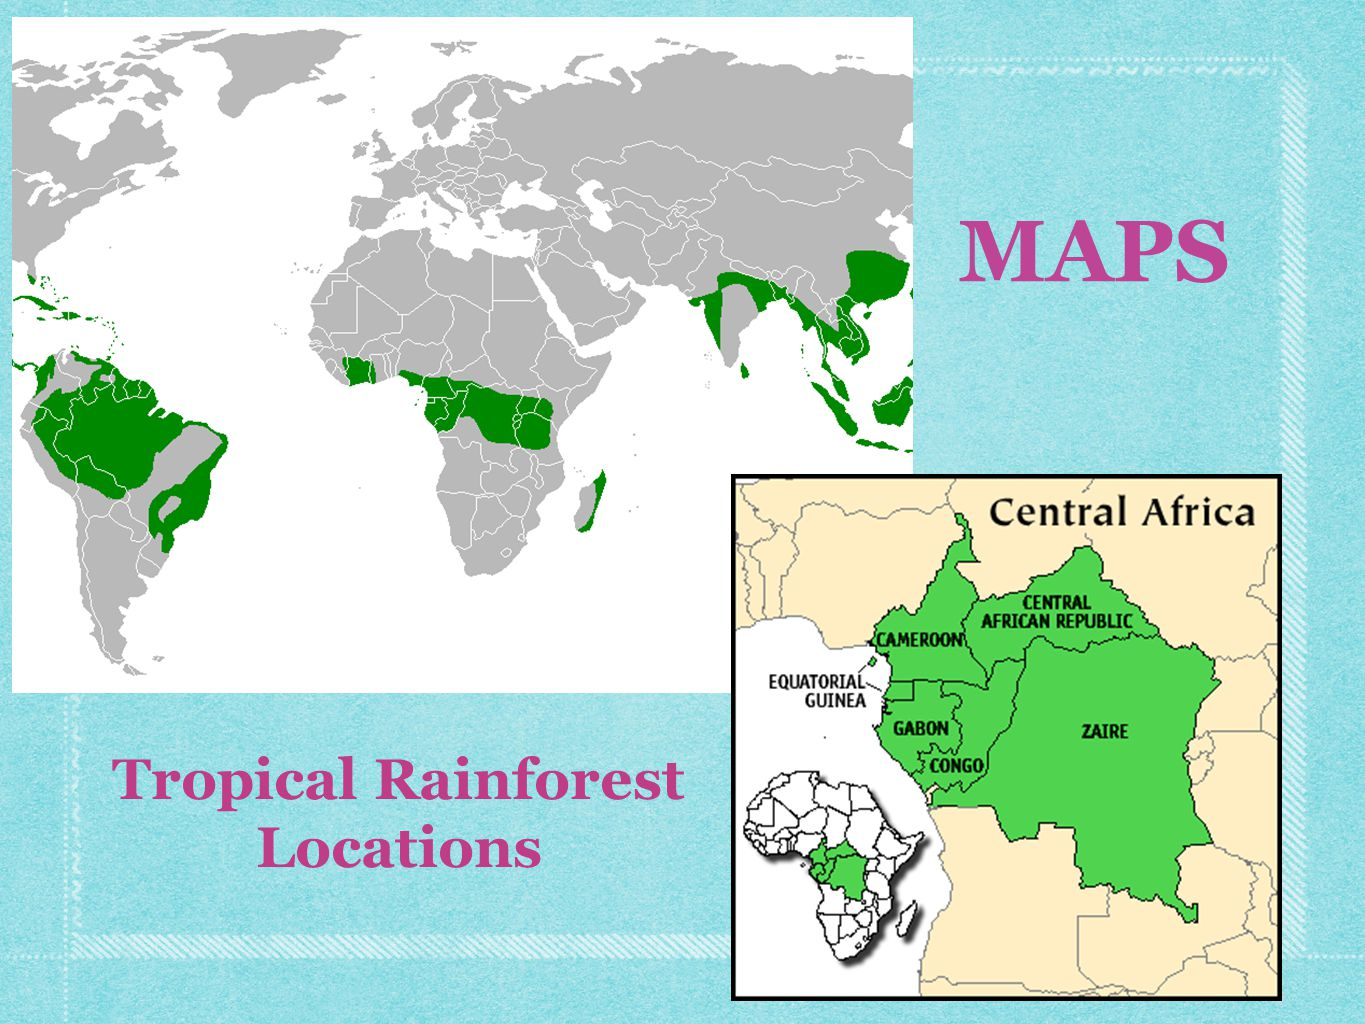 MAPS Tropical Rainforest Locations